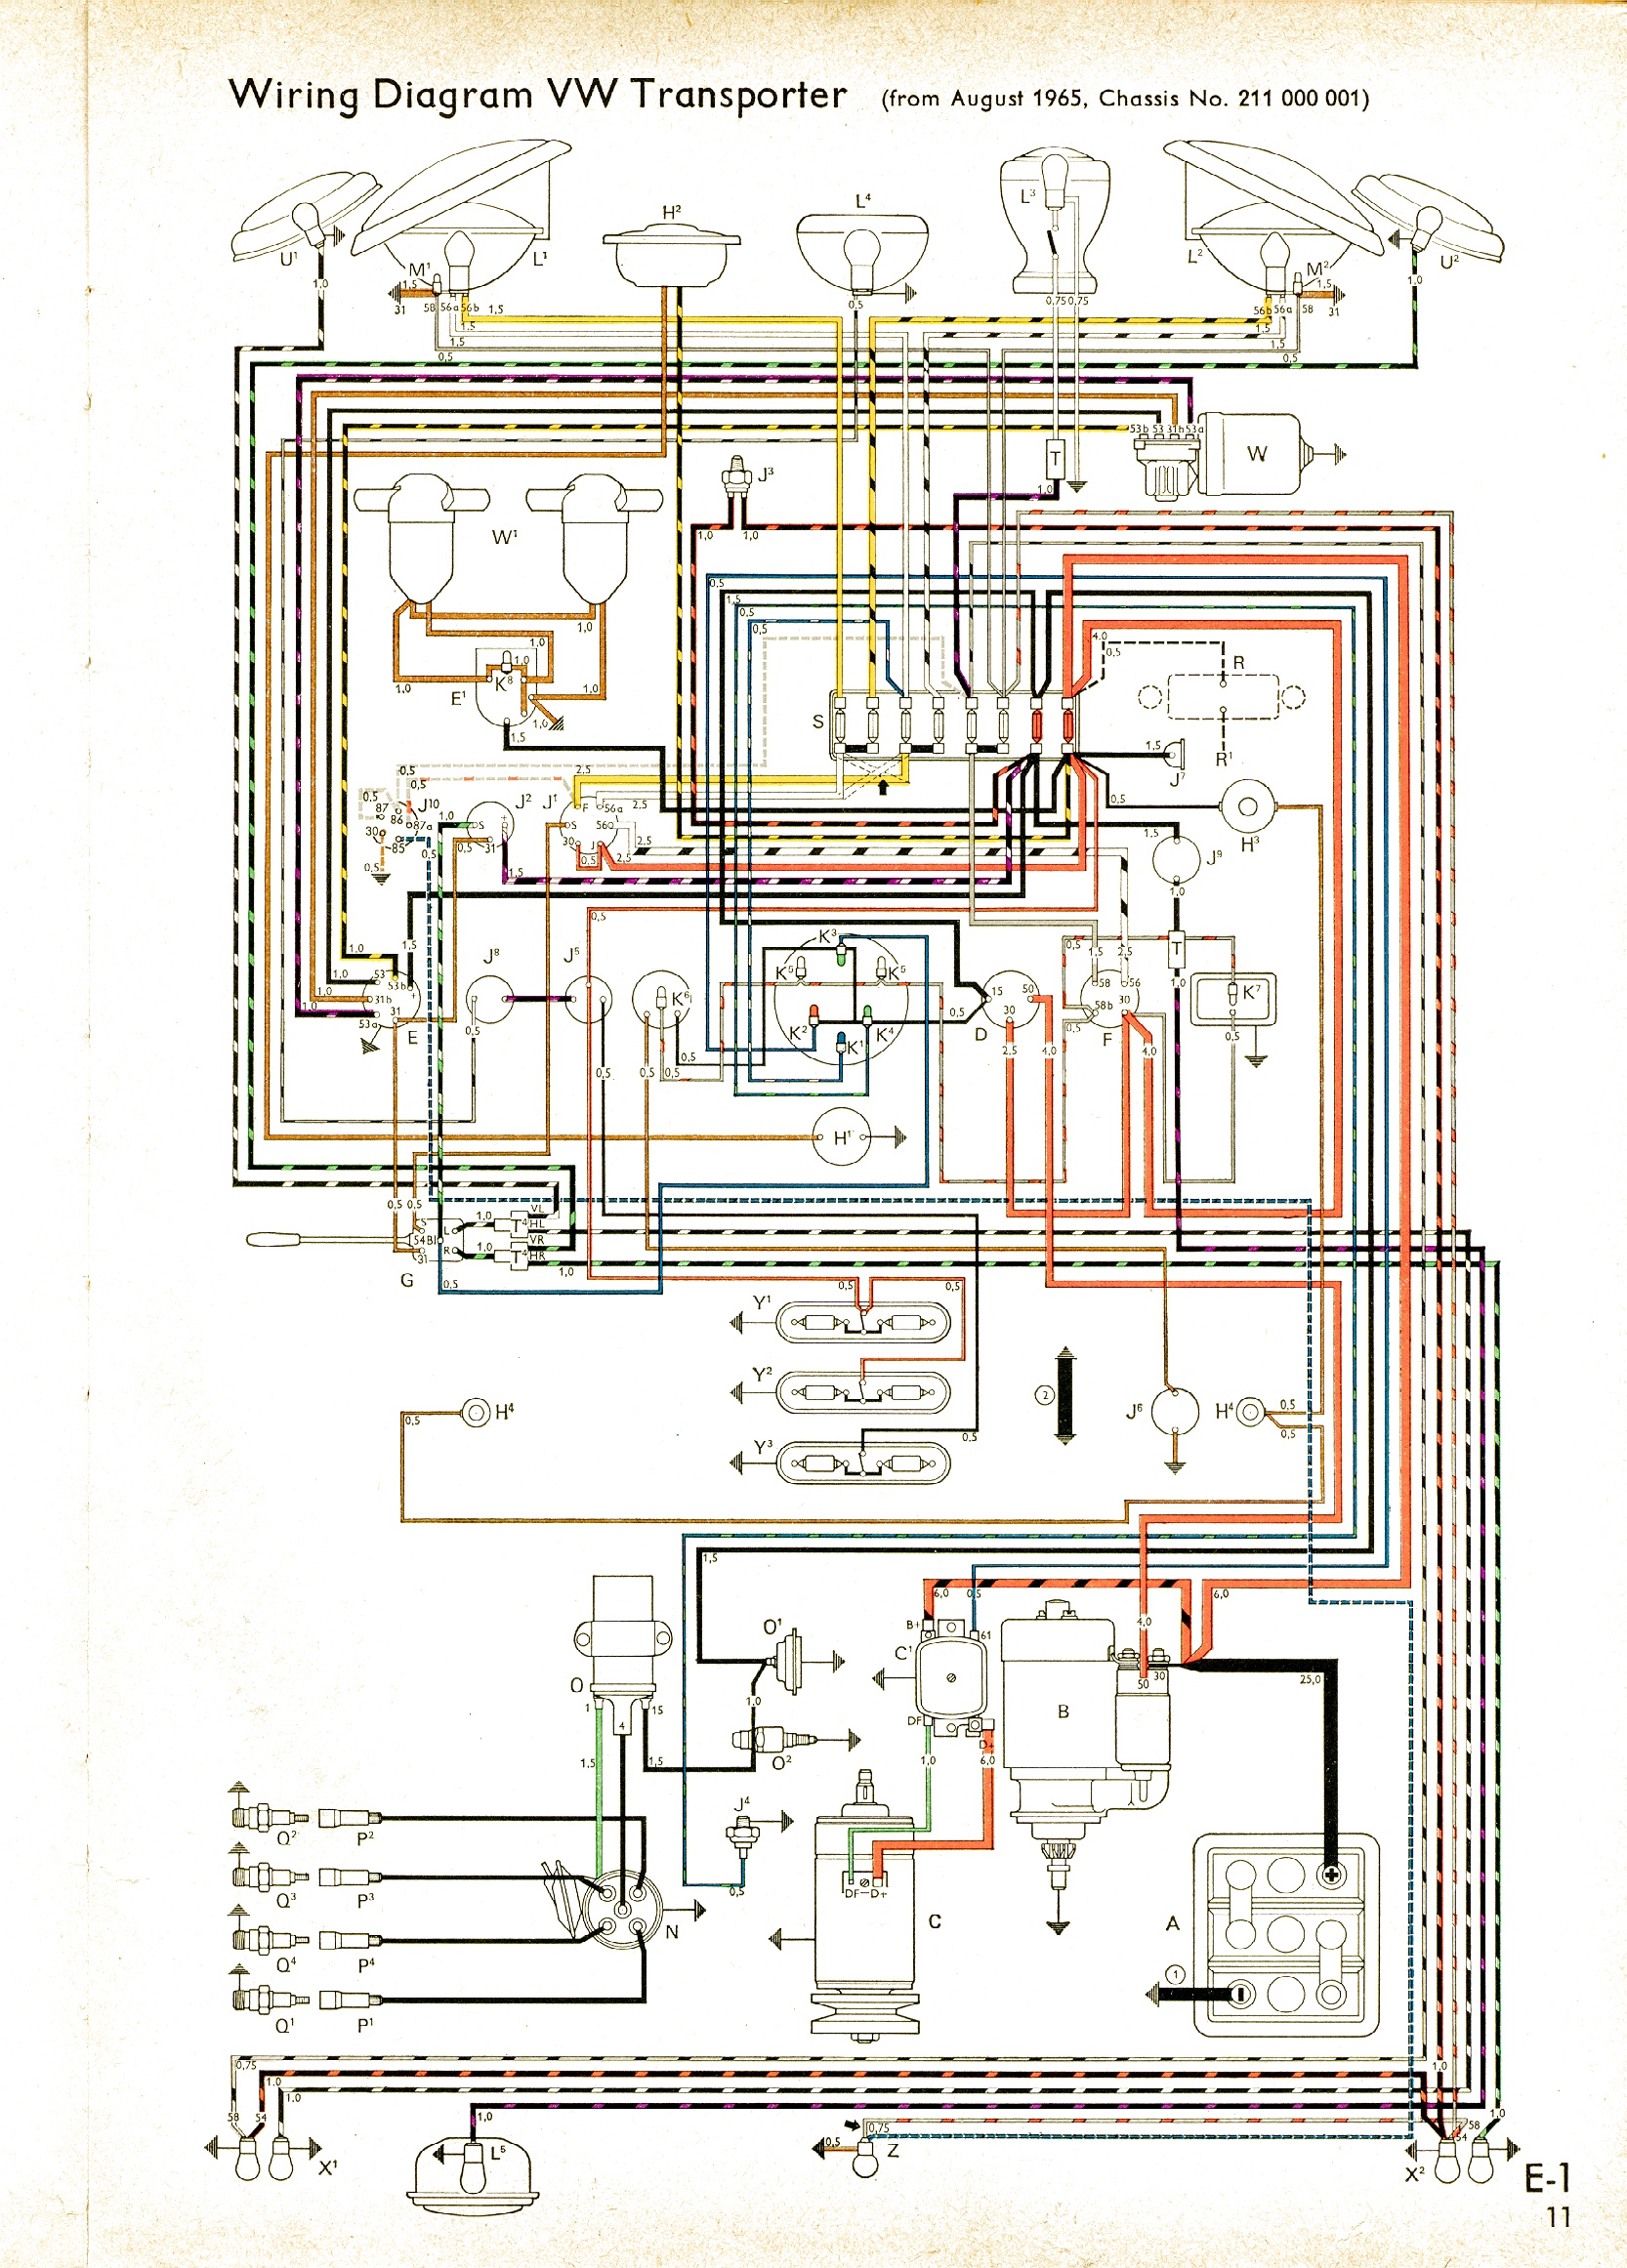 bus 65 vintagebus com vw bus (and other) wiring diagrams find wiring diagram for 87 ford f 150 at gsmportal.co